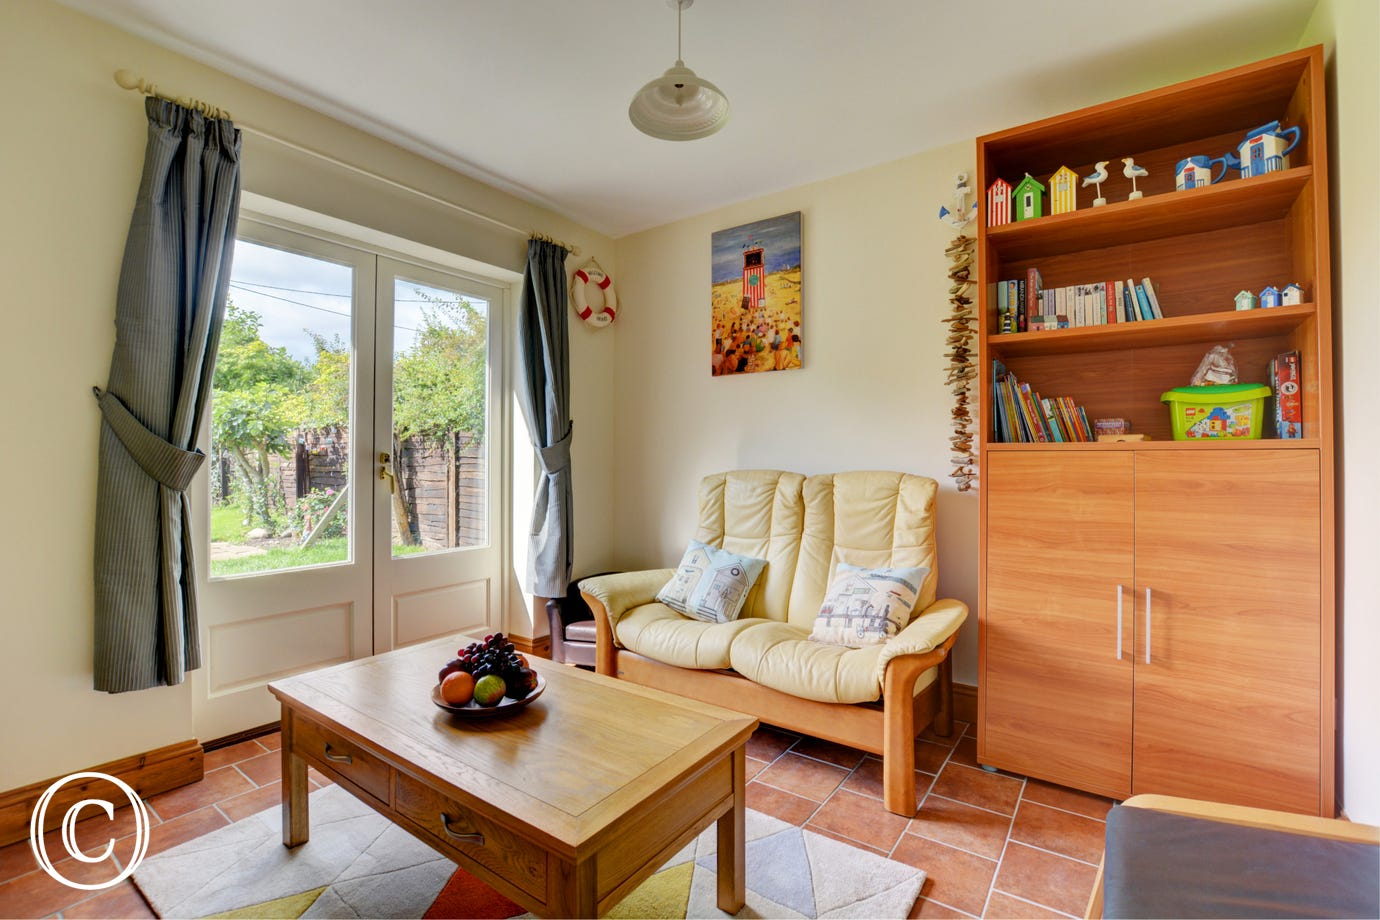 Sun room - perfect for a spot of relaxing with a book